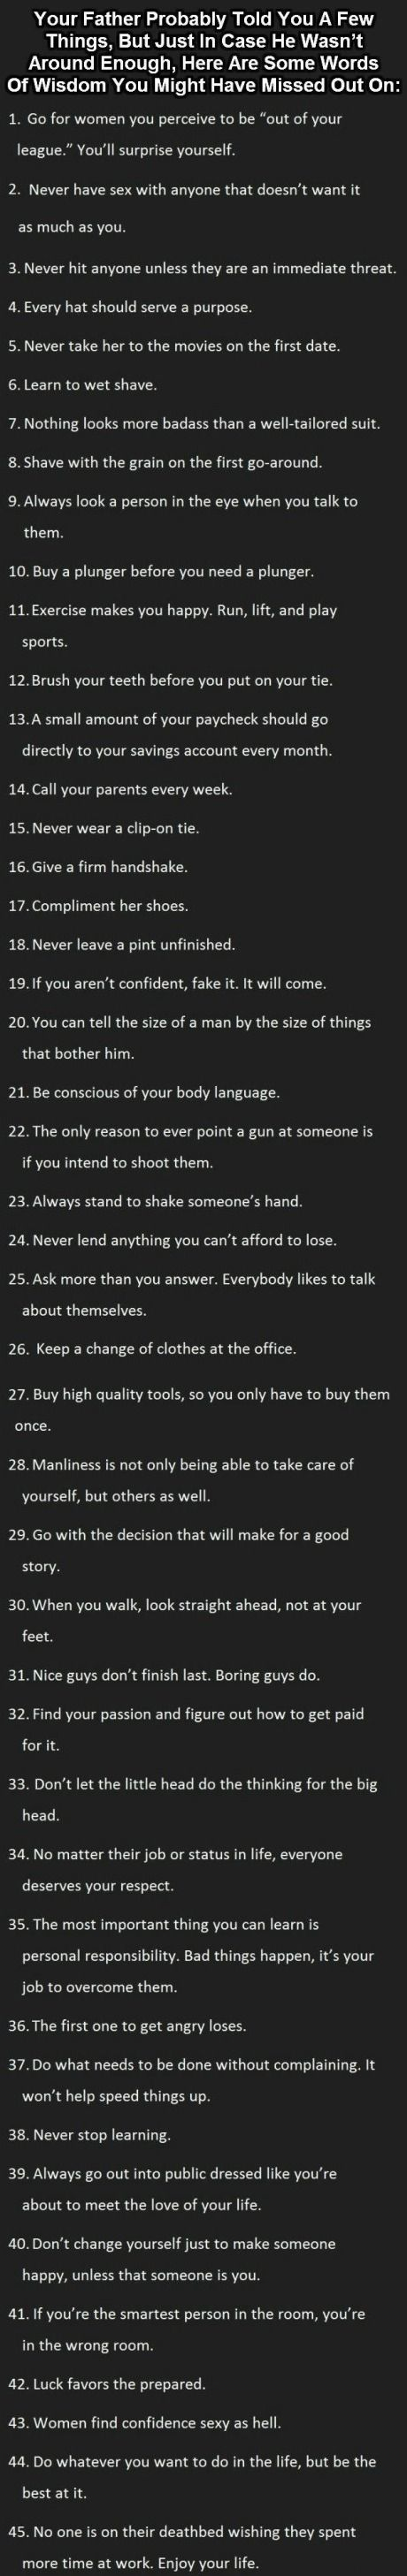 45 Ultimate Tips For Men. This is nice and I'd love to meet the kind if man who respects those tips